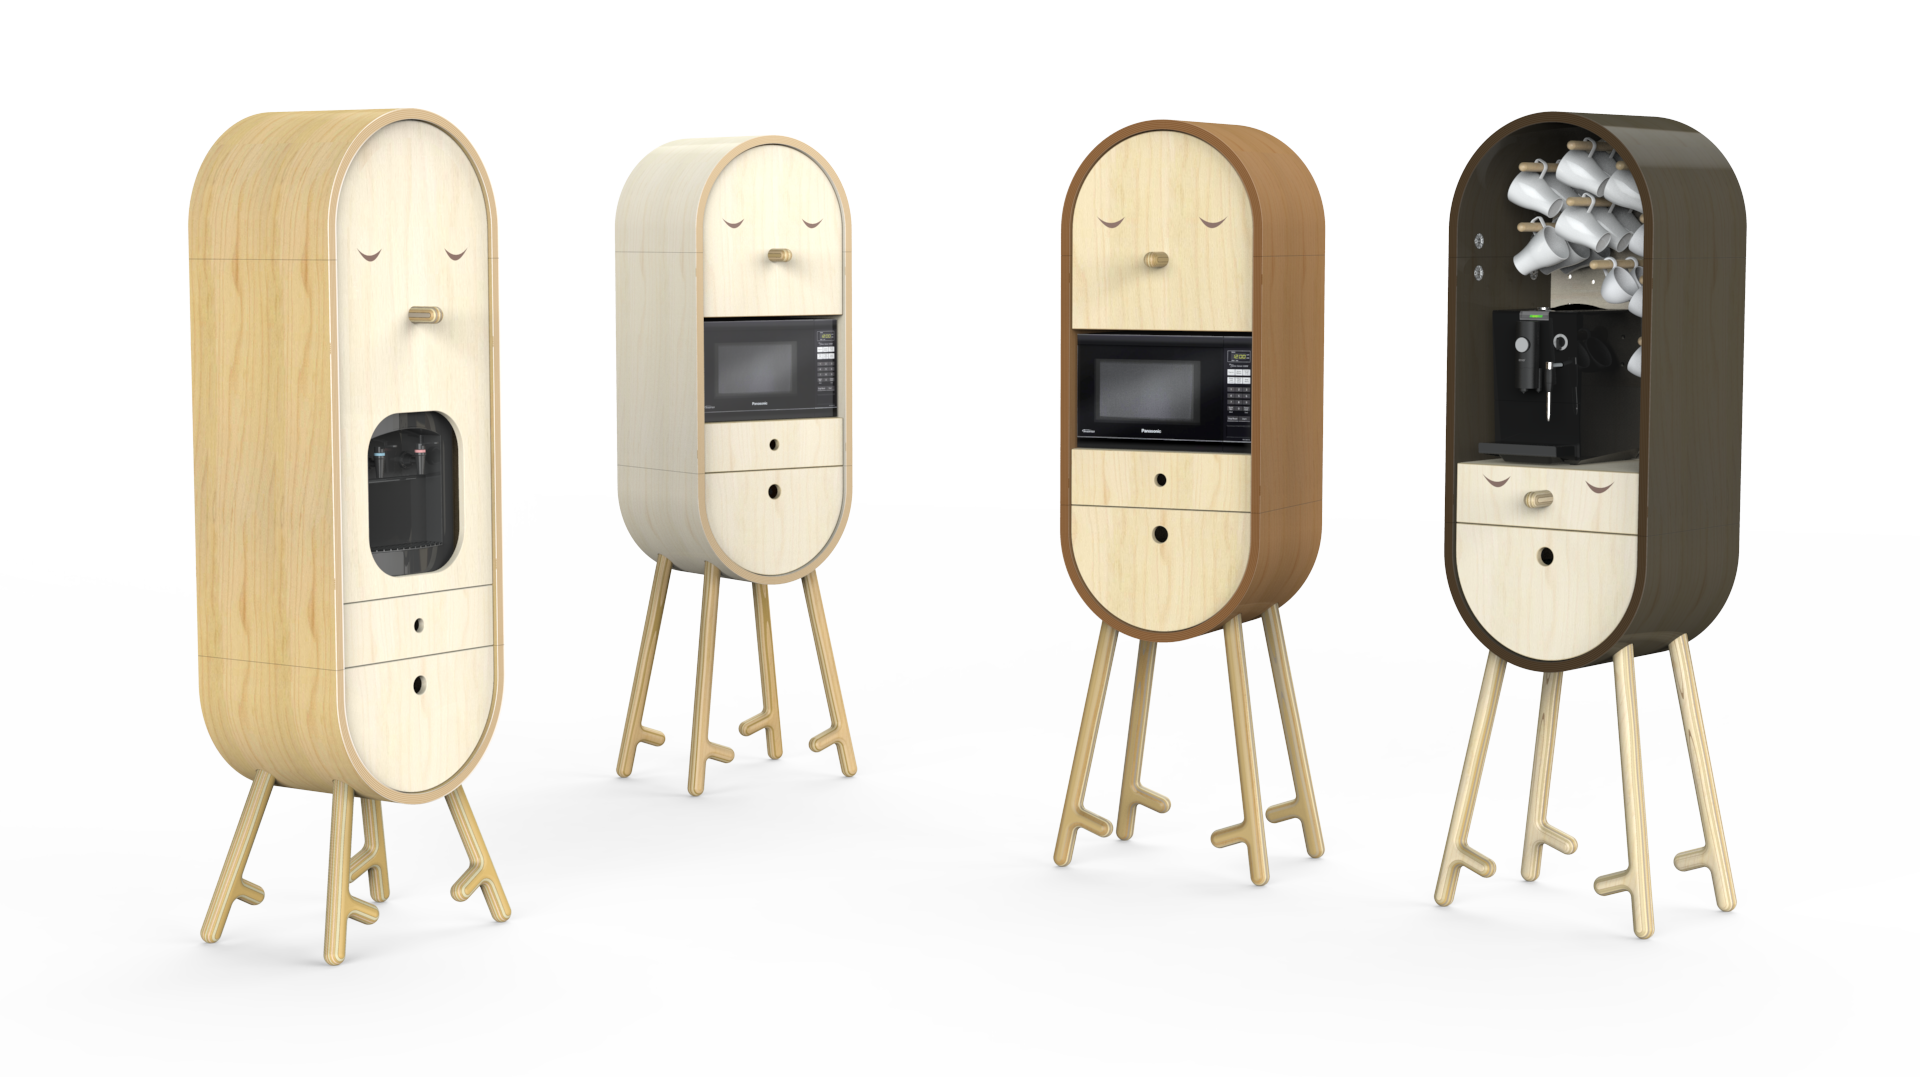 Lo-Lo, The Capsular Microkitchen by Aotta Studio